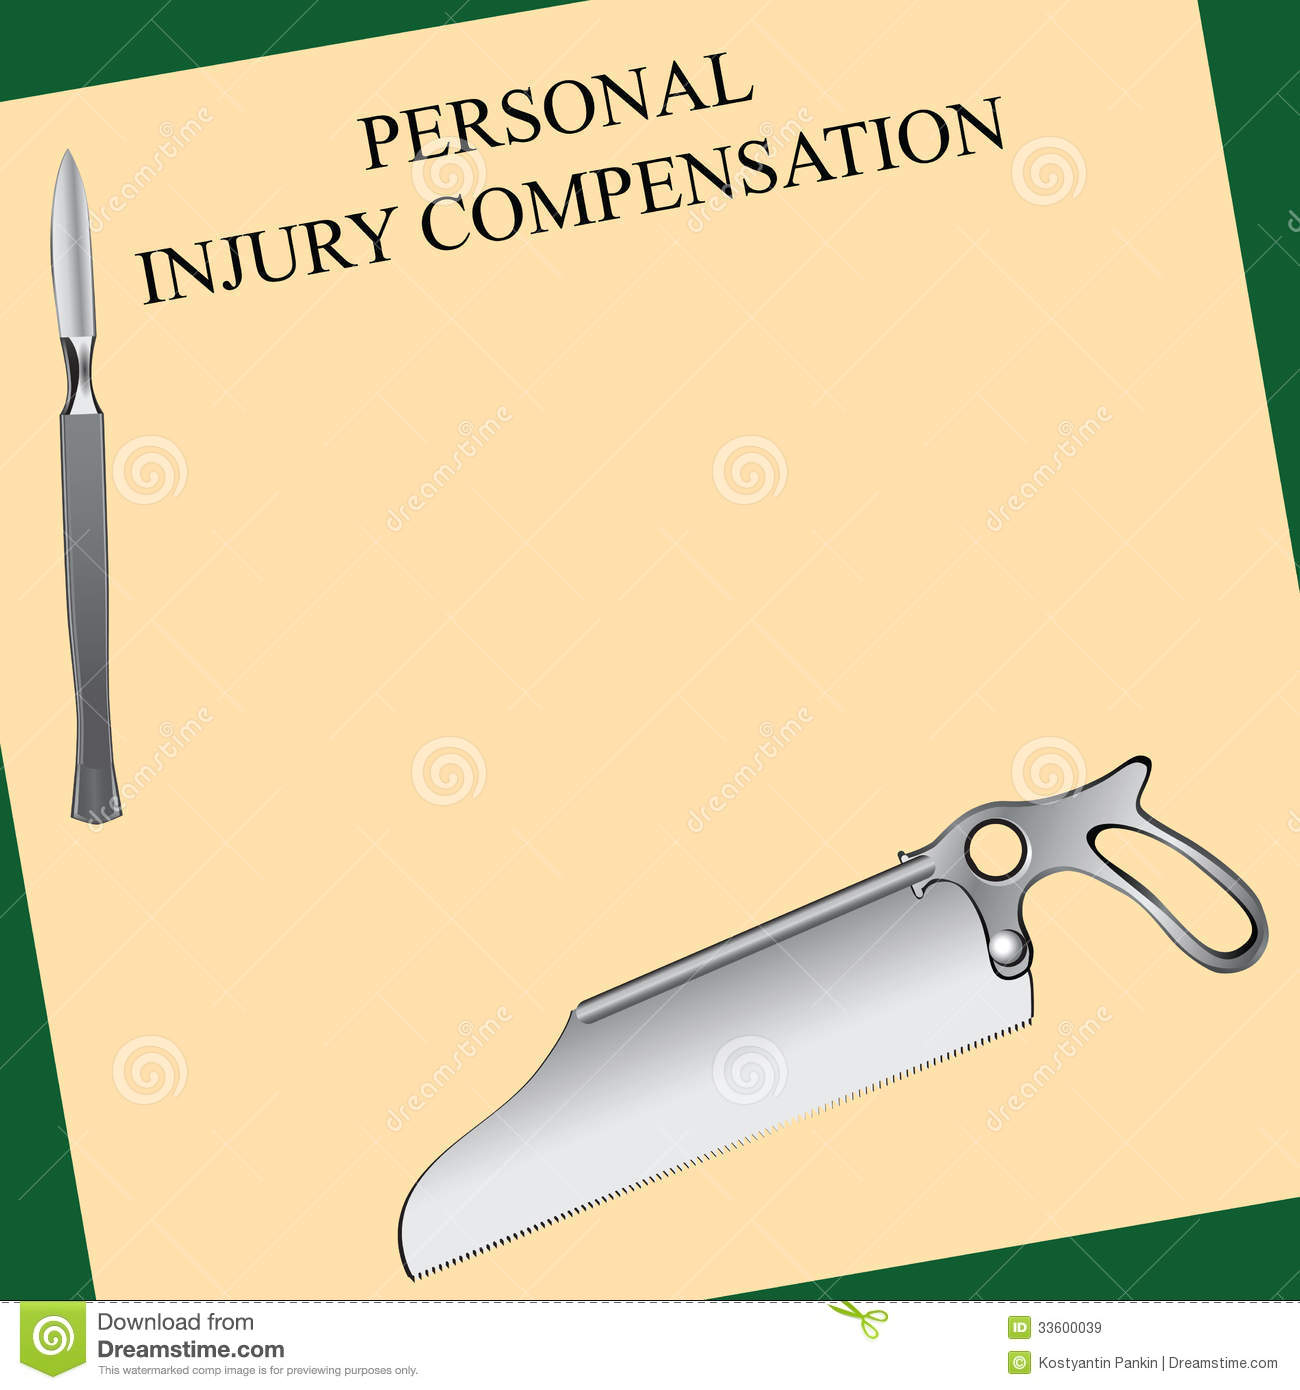 personal injury compensation in relation to If you are considering a personal injury claim outside of your workers' compensation claim, it is in your best interest to contact an attorney to go over the details of your case to make sure you have a valid claim.